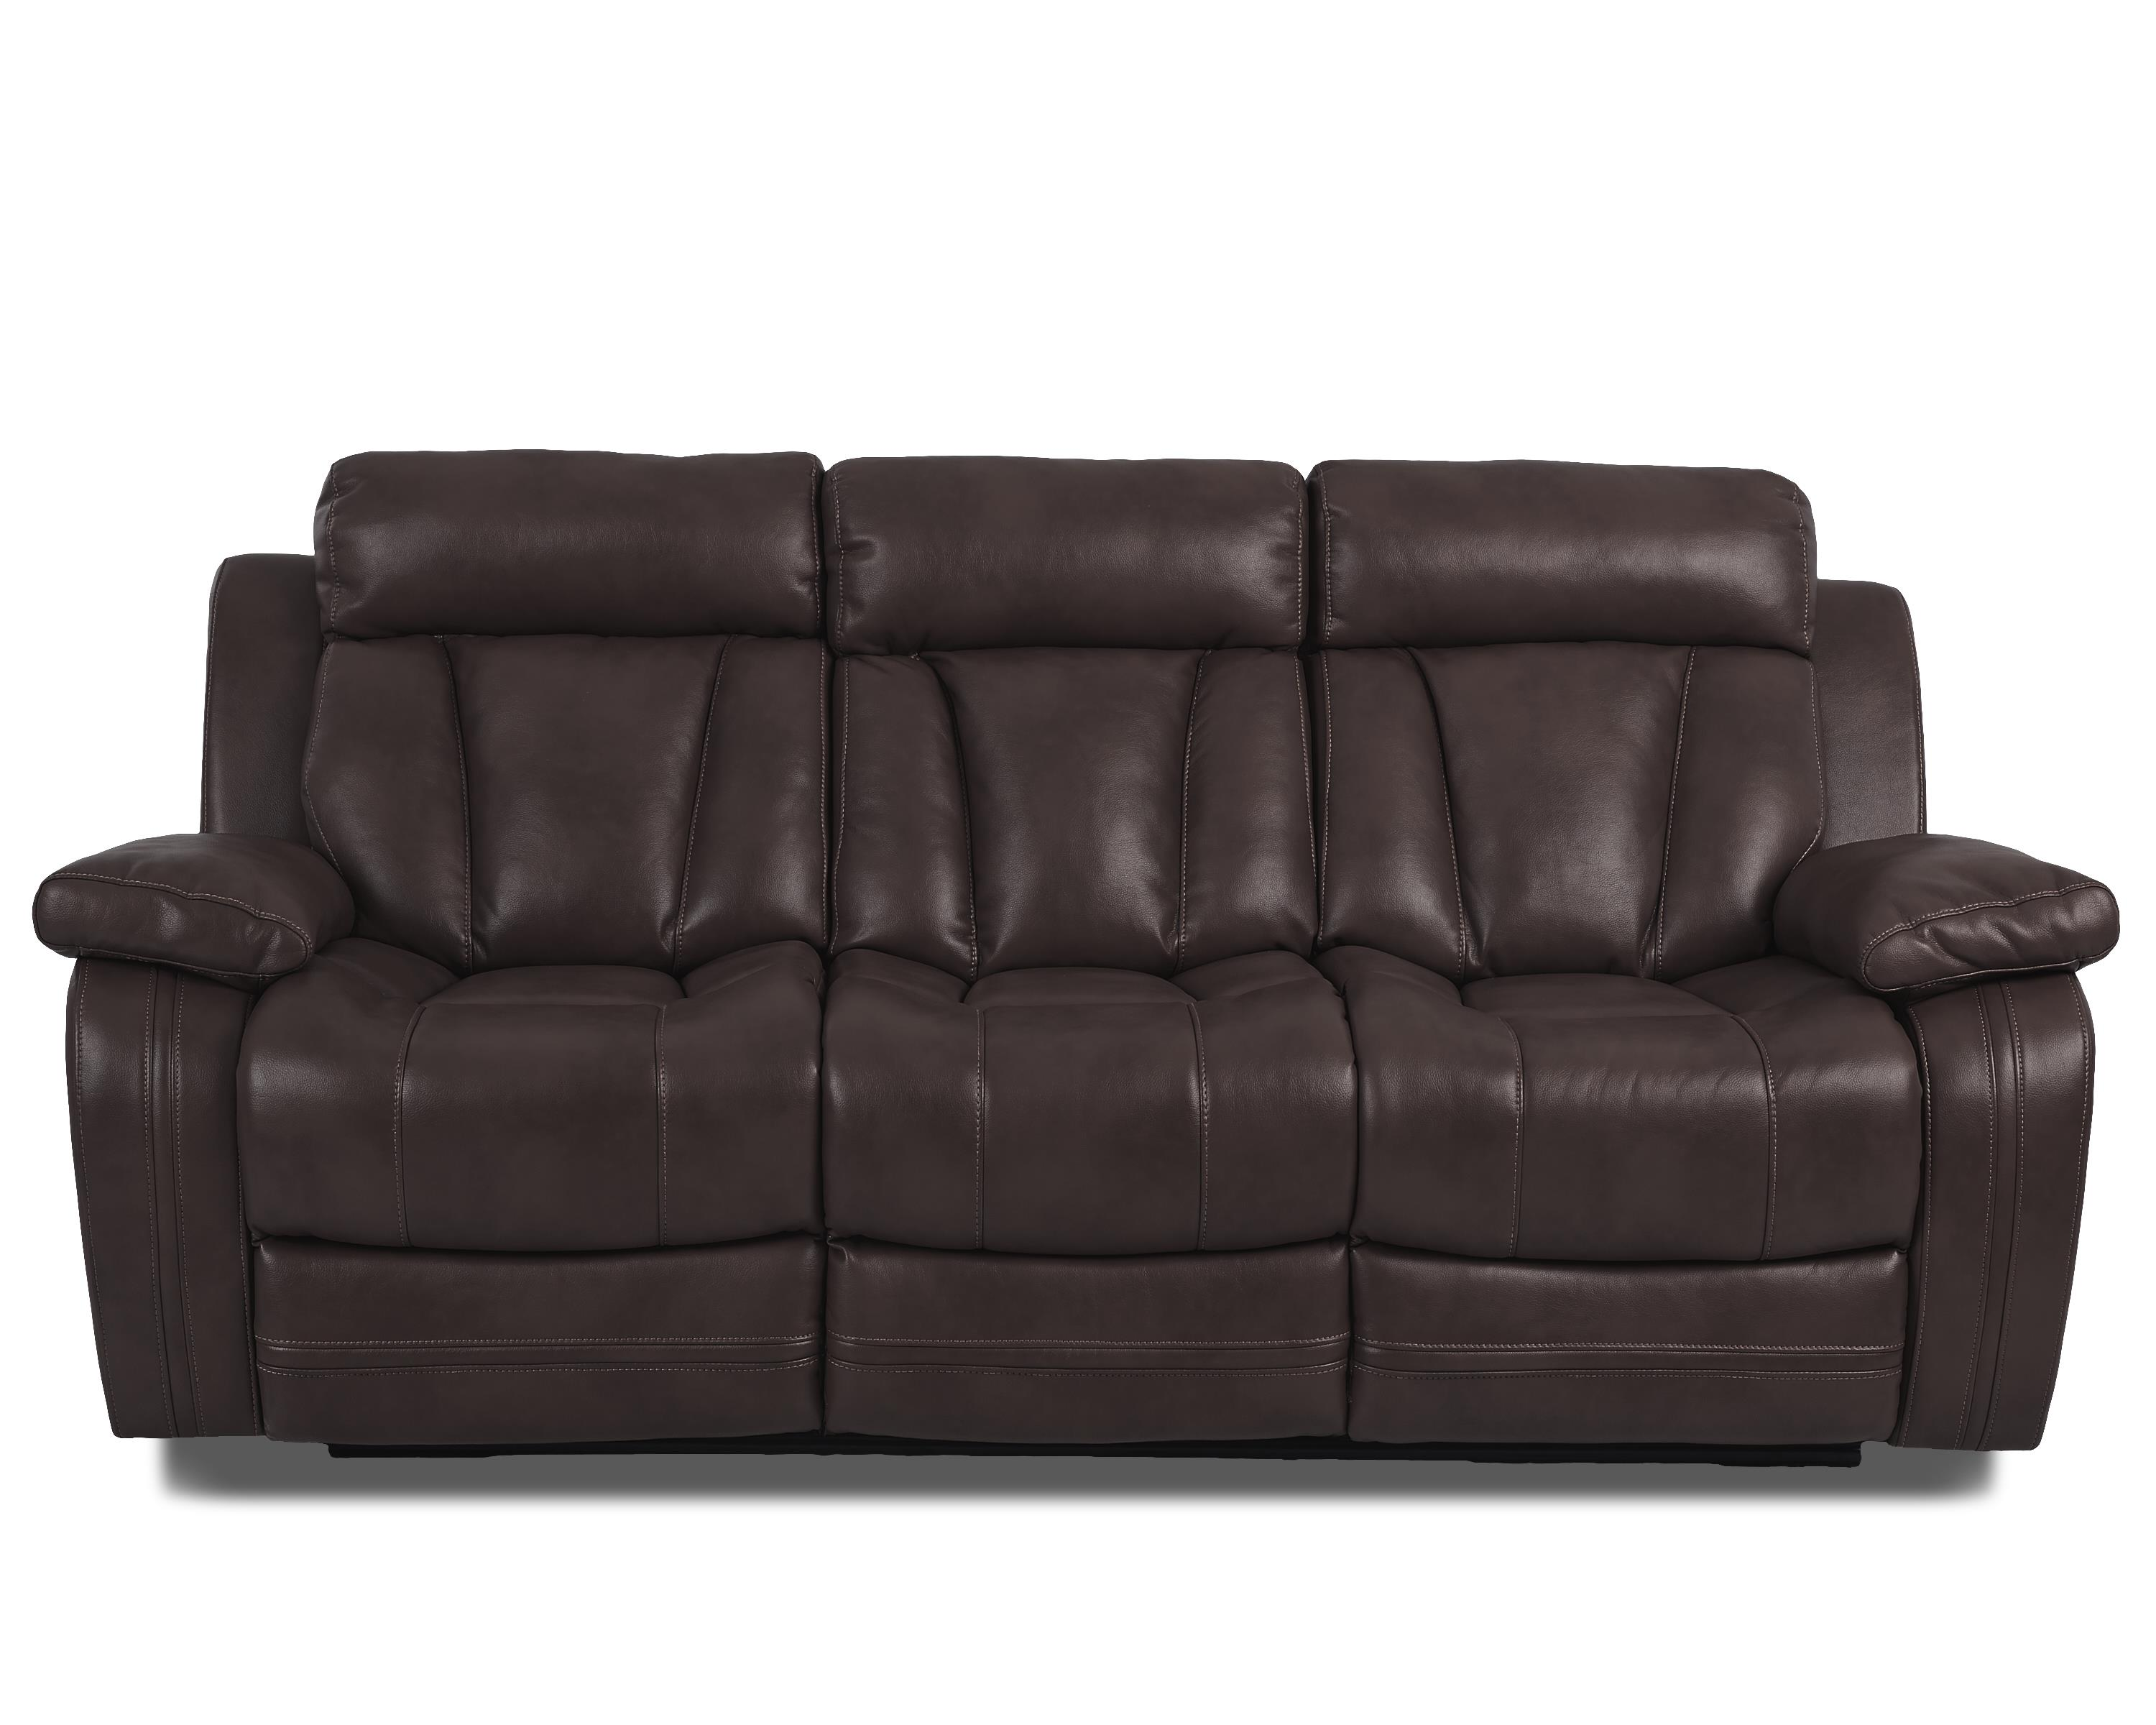 Reclining Sofa W/ Table